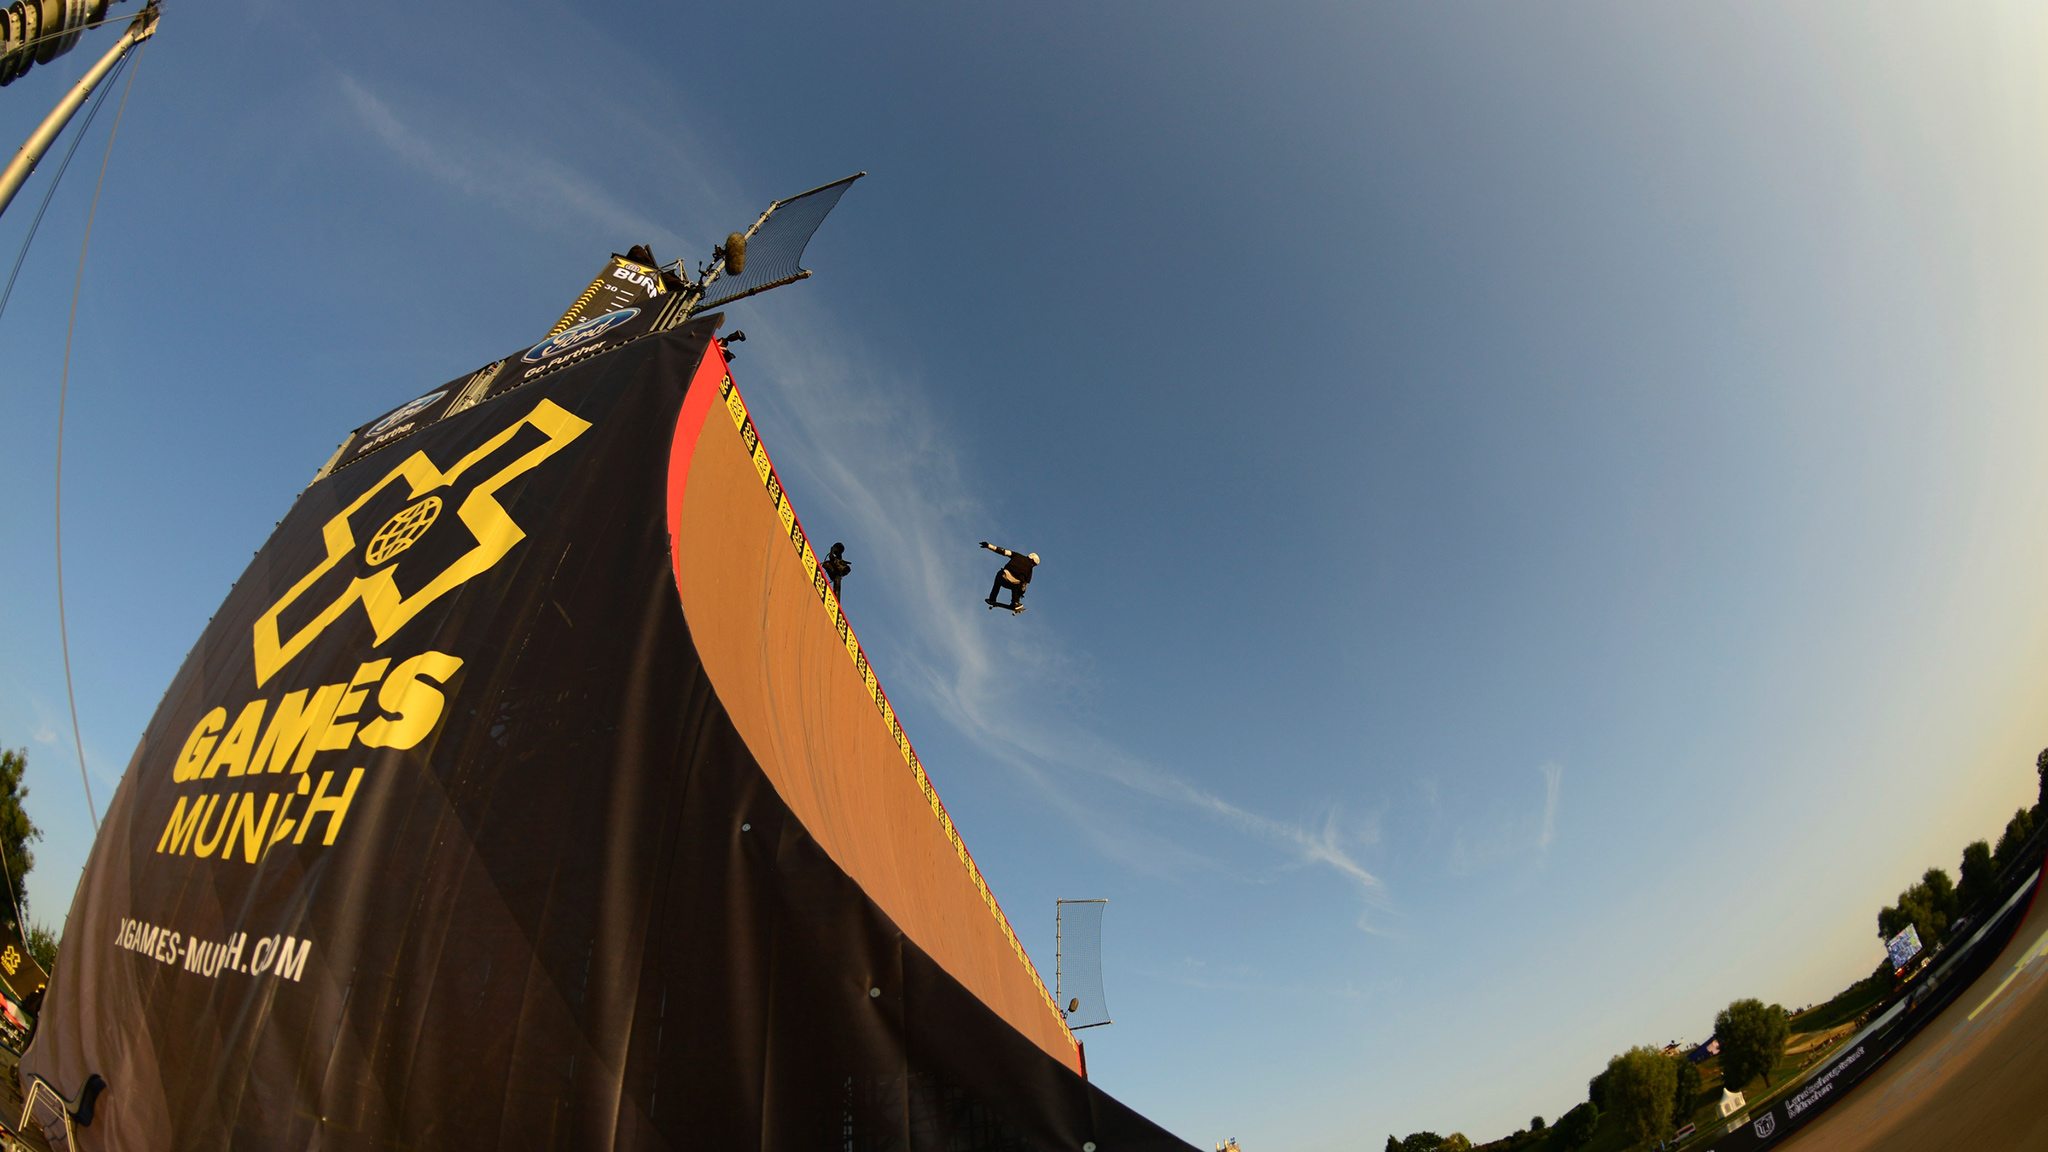 Bob Burnquist, Munich